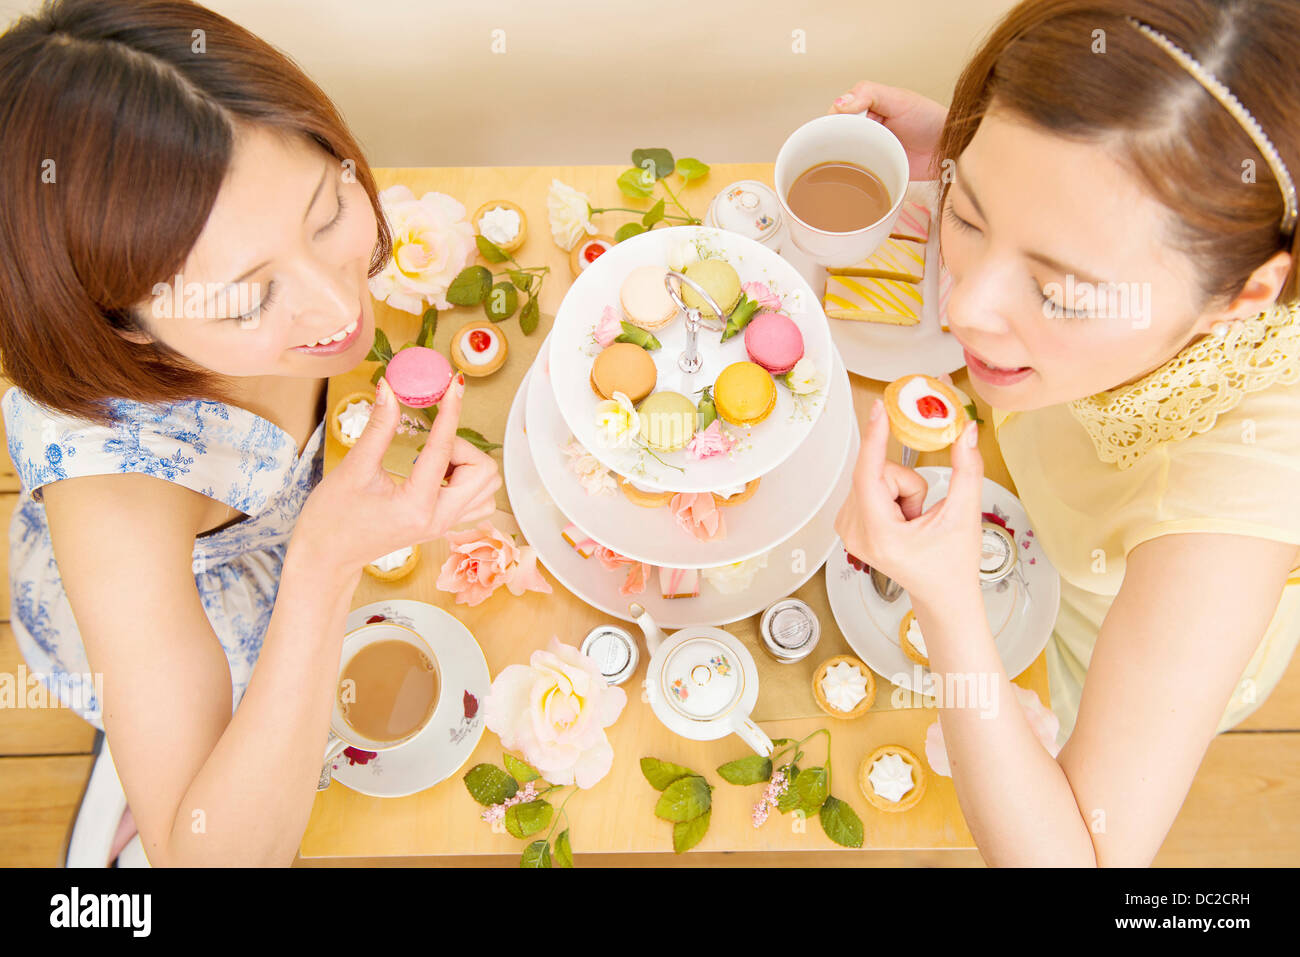 Two happy women indulging in sweet cakes - Stock Image